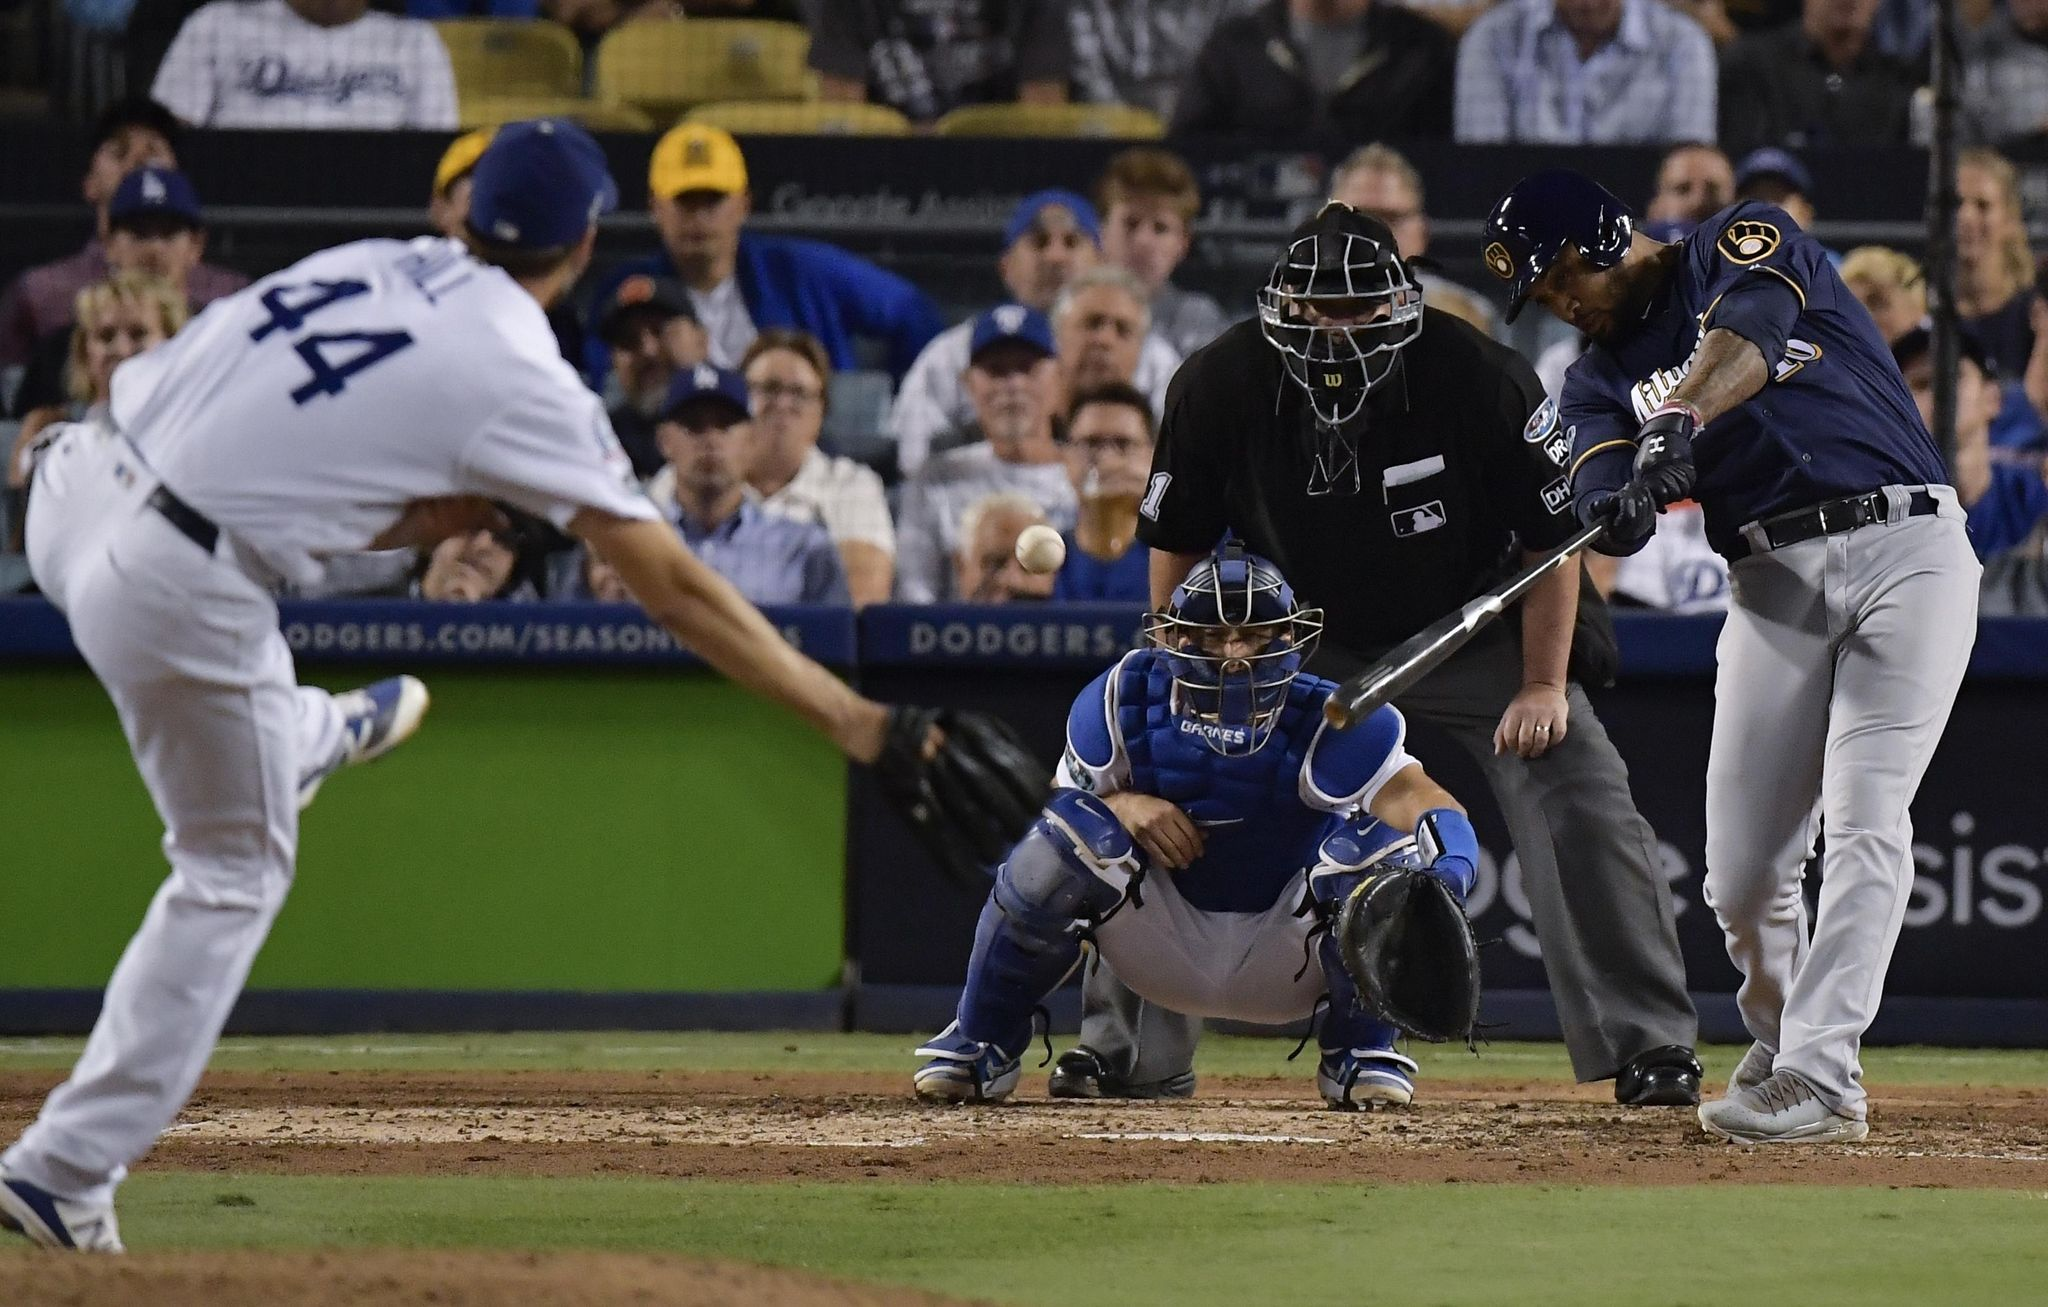 Nlcs_brewers_dodgers_baseball_14534_s2048x1307